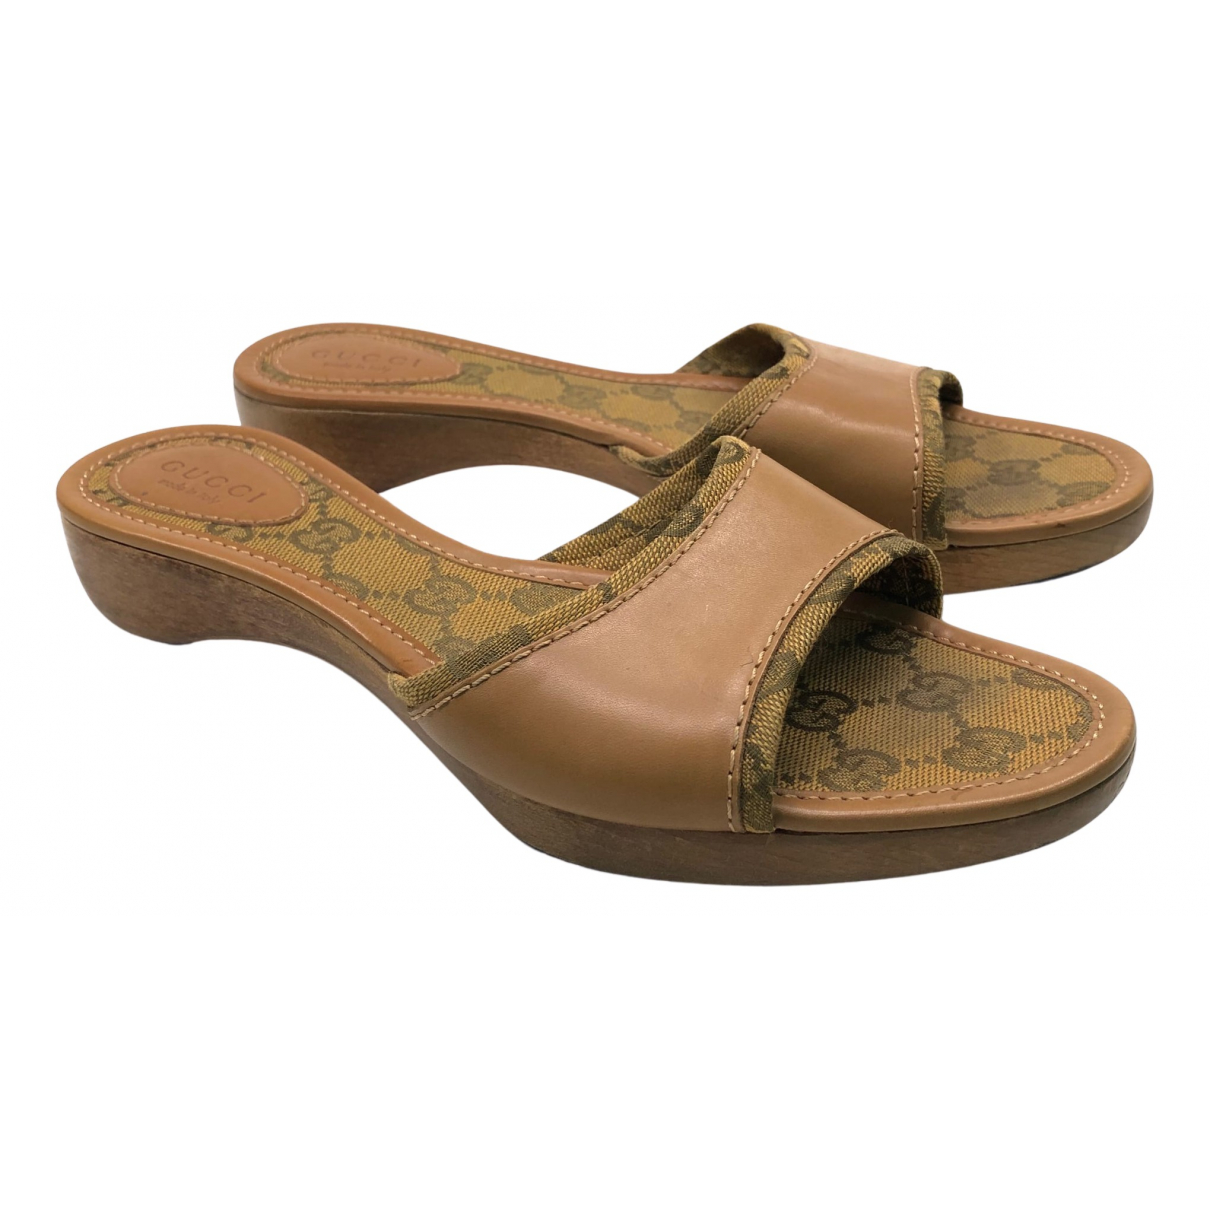 Gucci N Beige Cloth Sandals for Women 36.5 EU